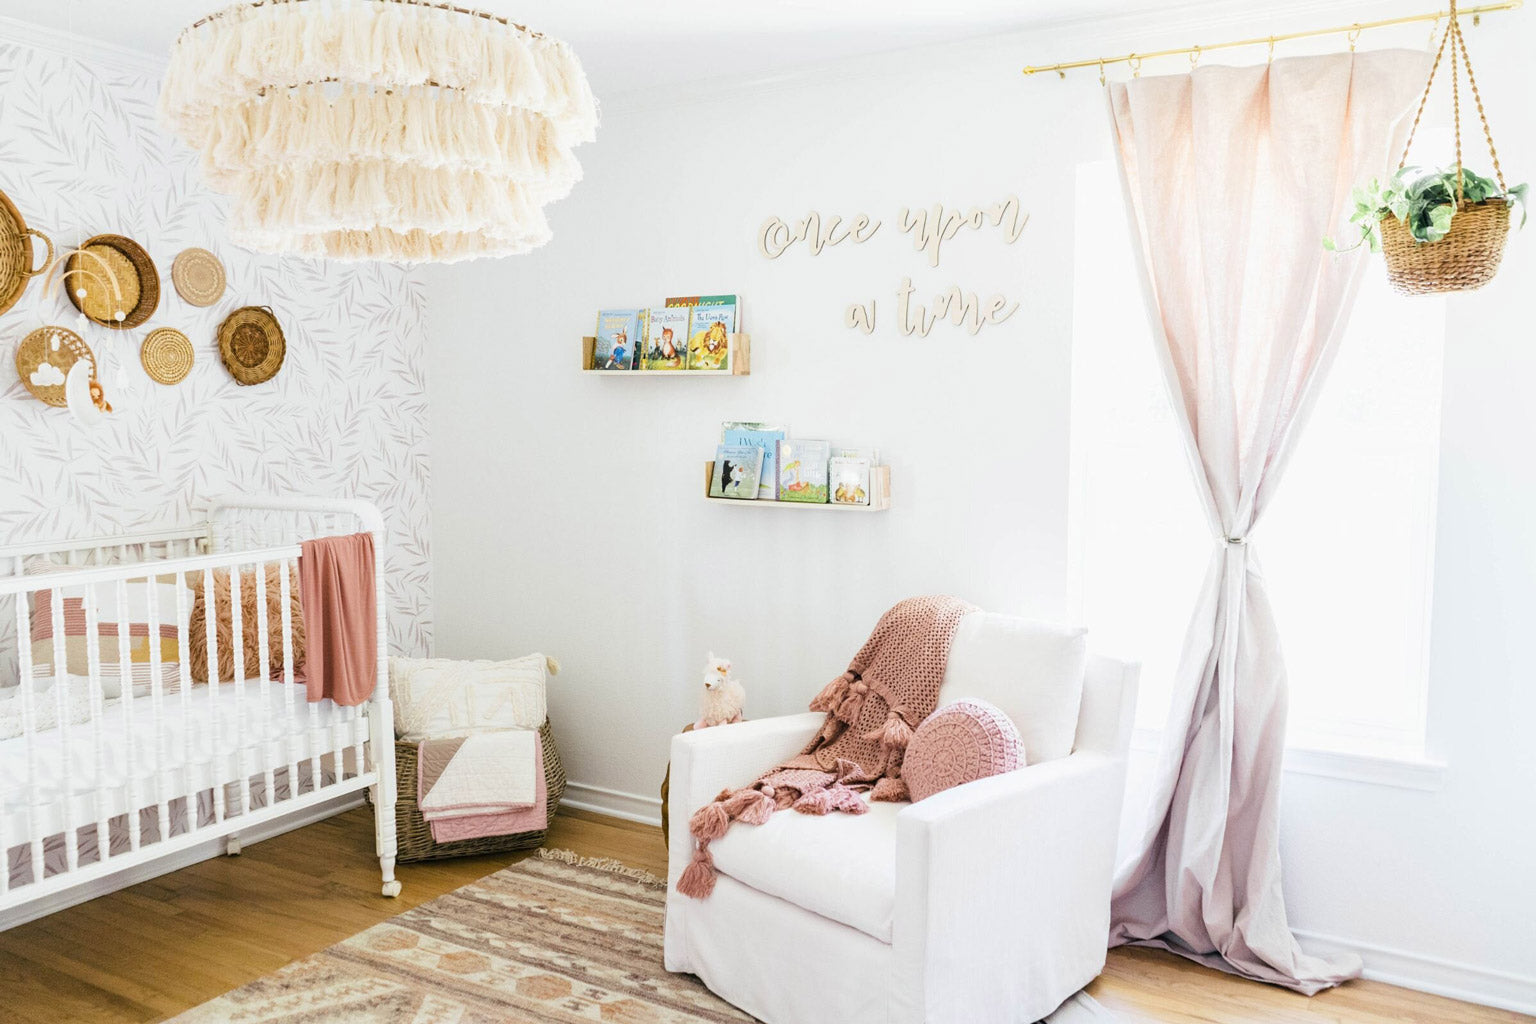 Dreamy baby girl nursery with botanical foliage removable wallpaper